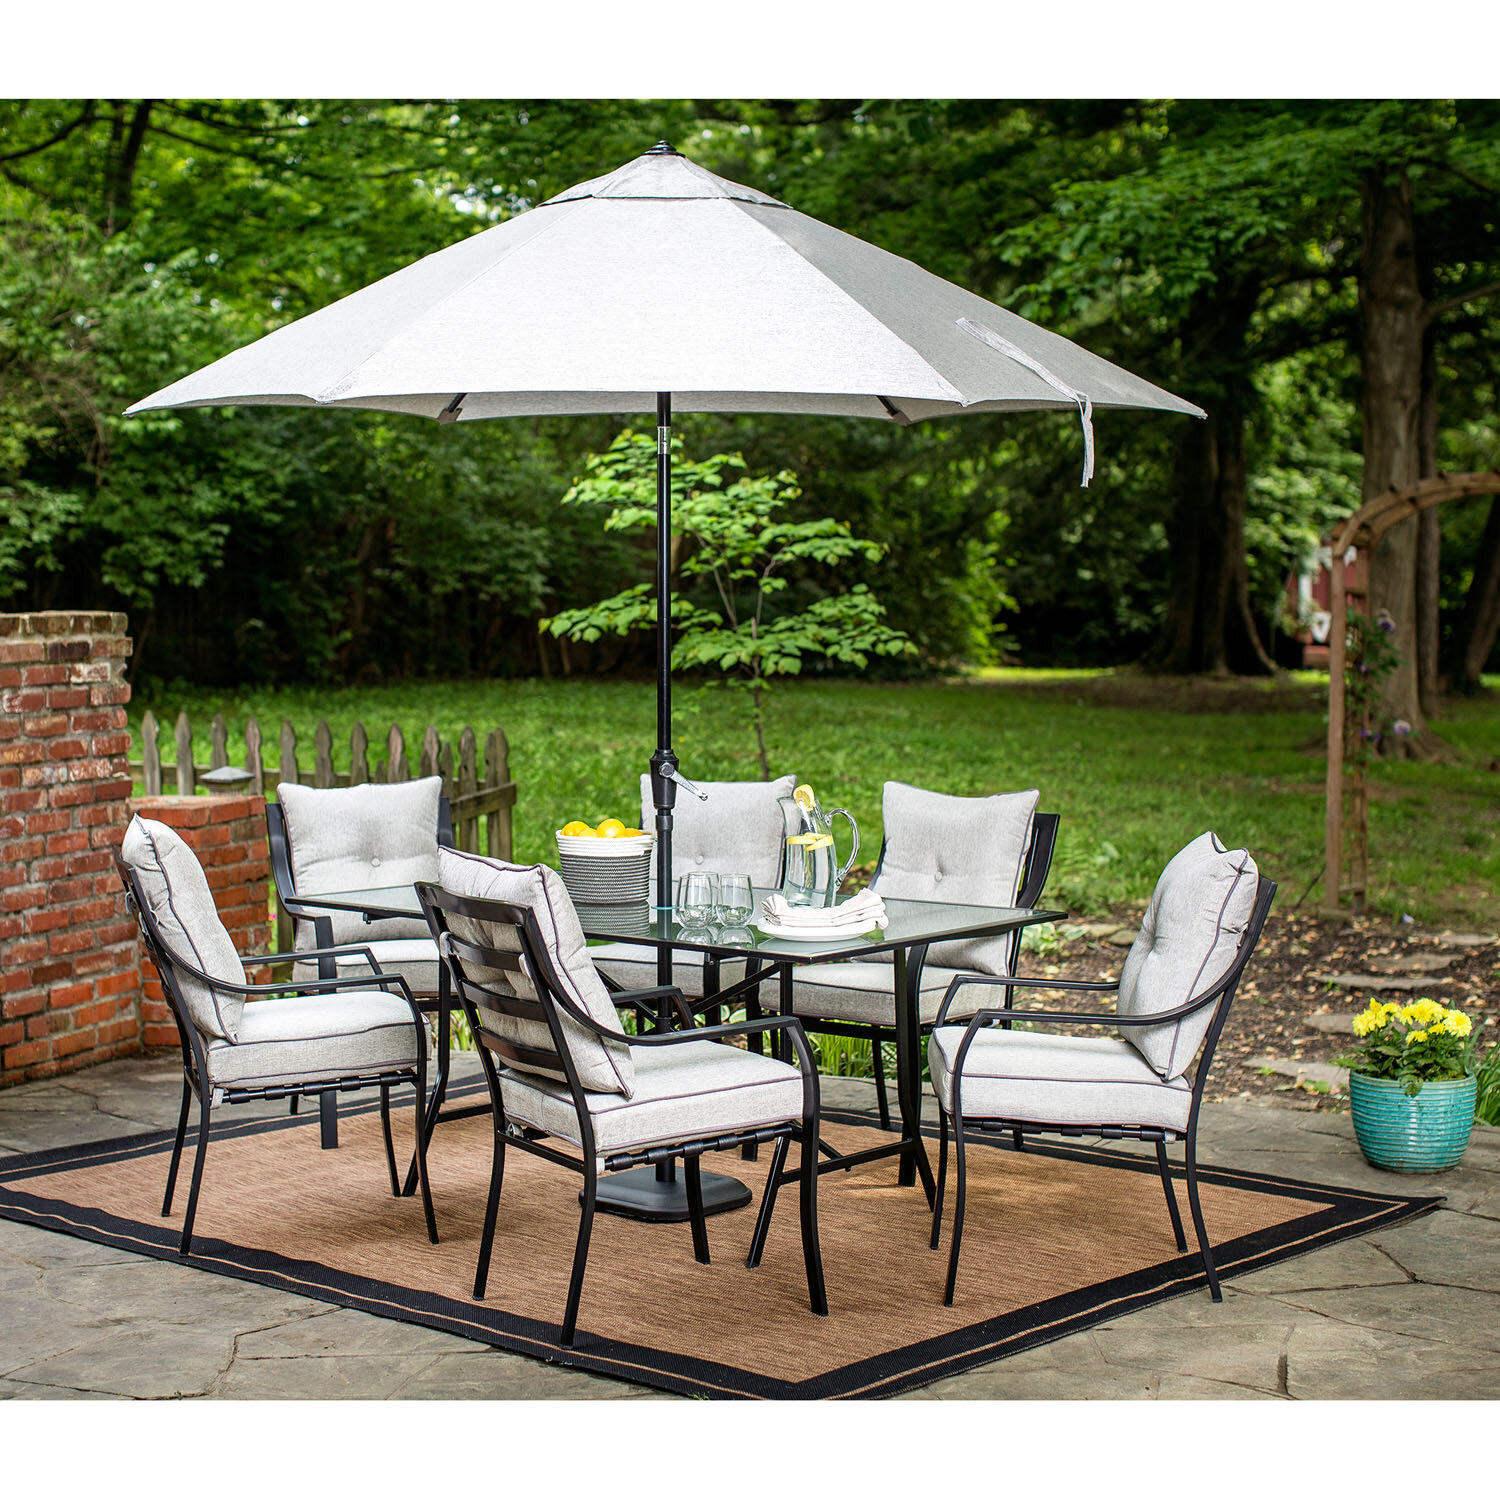 Patio Furniture Dining Sets With Umbrella Hanover Brayden Studio